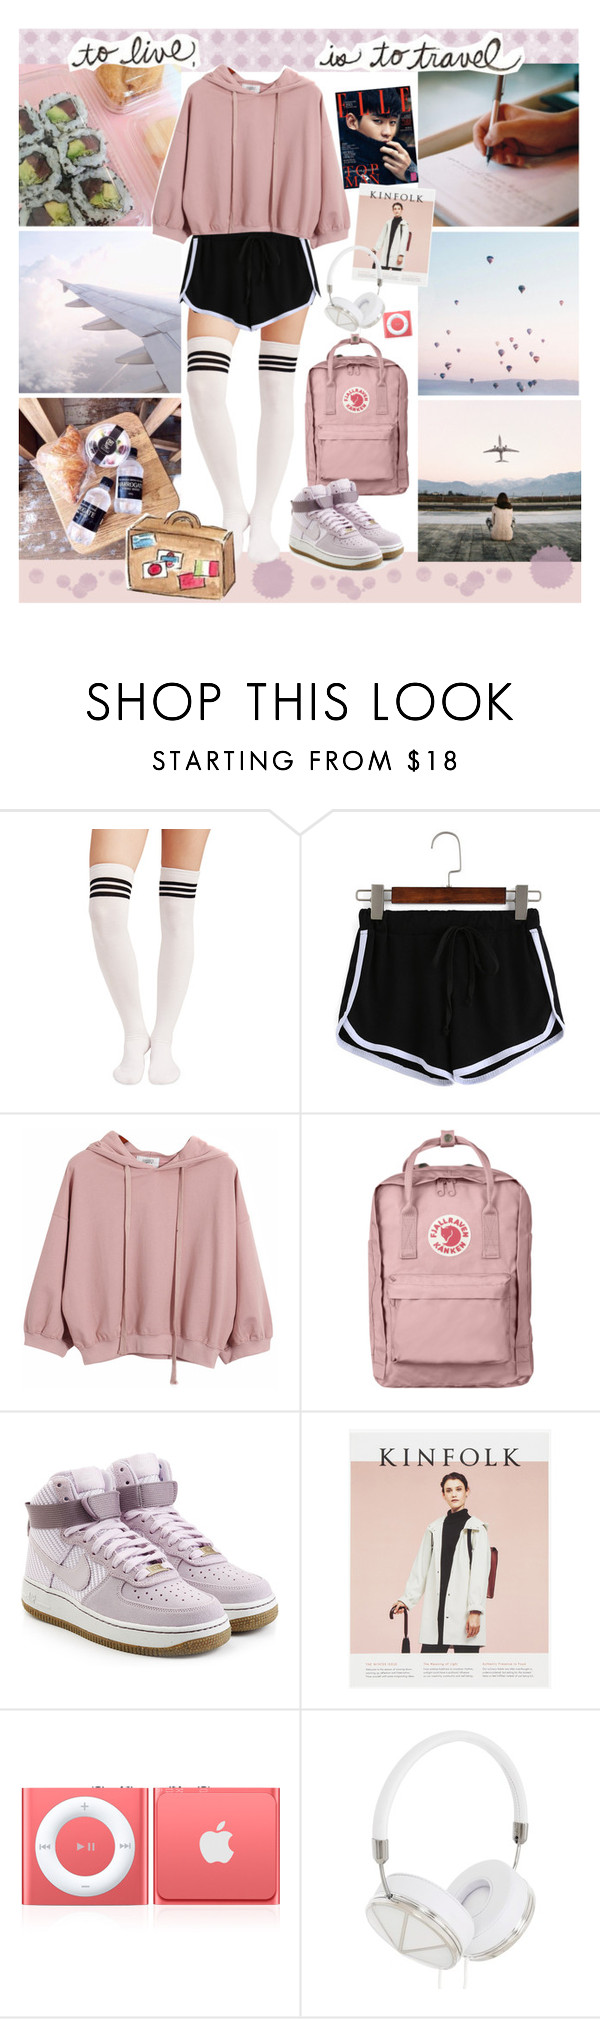 """Hands up if you feelin' the vibe now // chloe's summer challenge"" by little-miss-rhapsody ❤ liked on Polyvore featuring Chicnova Fashion, Fjällräven, NIKE, Frends, epifashionset2016 and stylingmysummer"